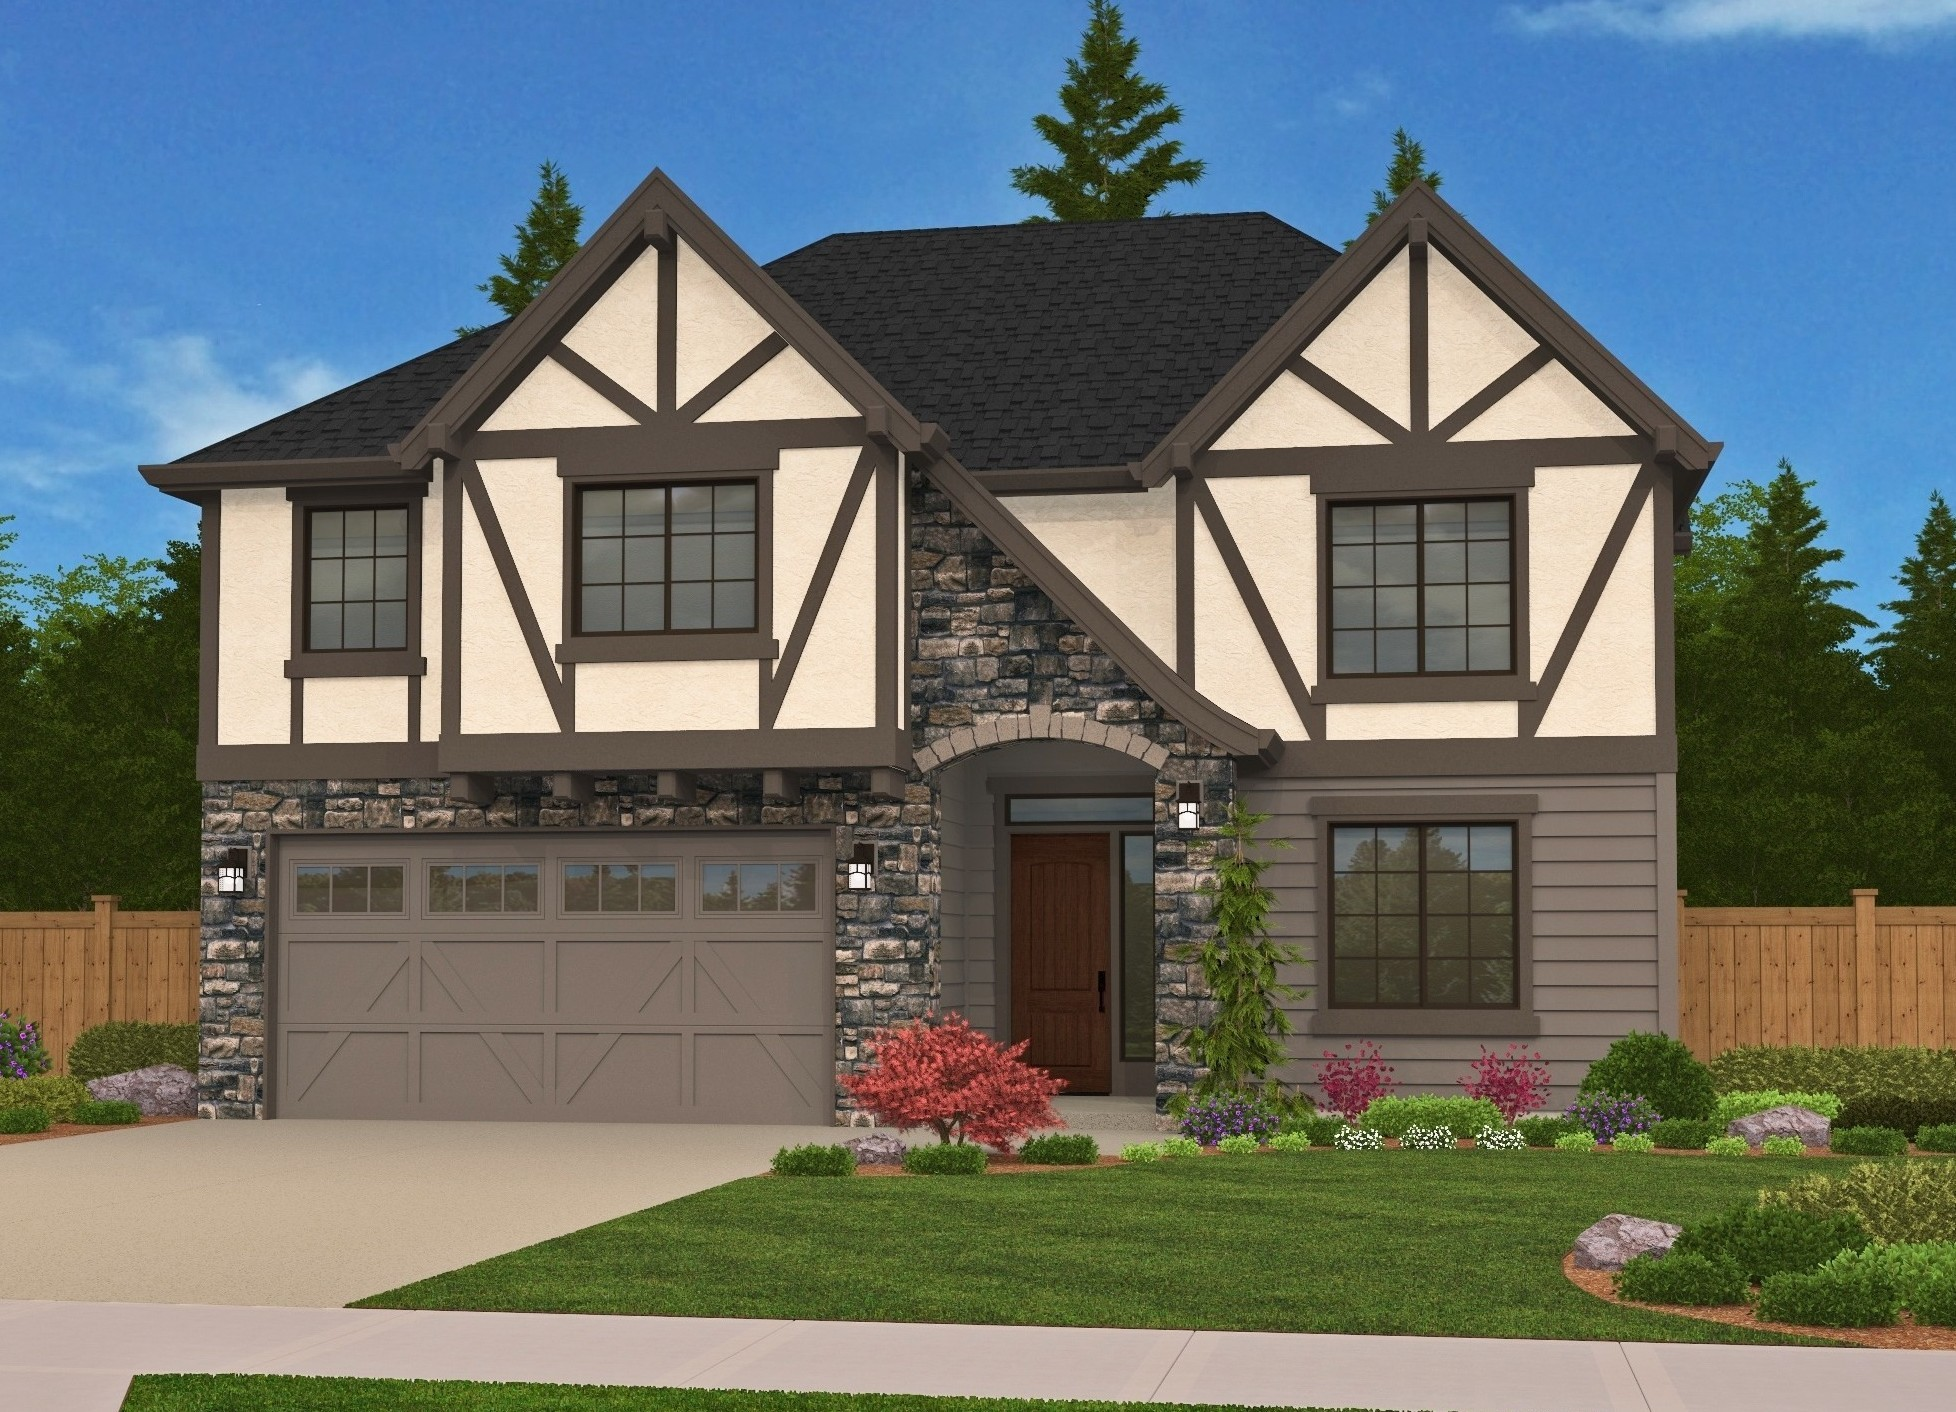 M 2606 Gfh Tudor Style Cottage House Plan